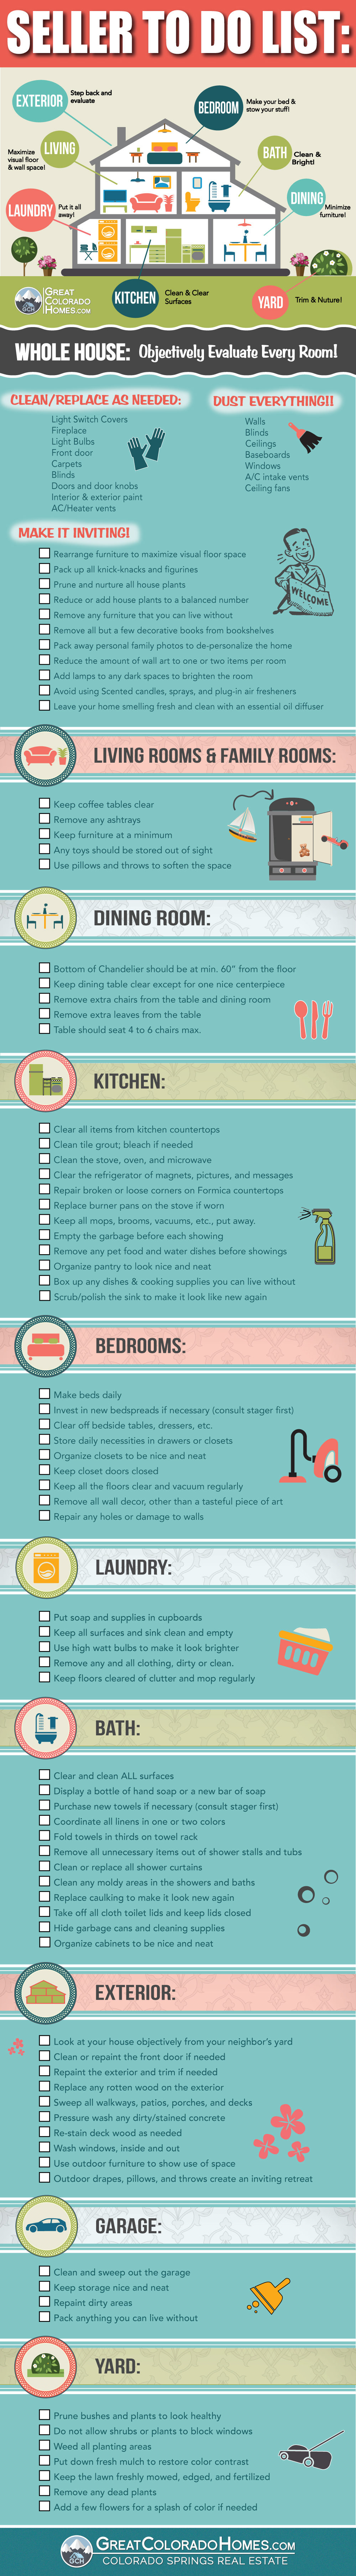 The Ultimate Home Sellers To Do Checklist Infographic